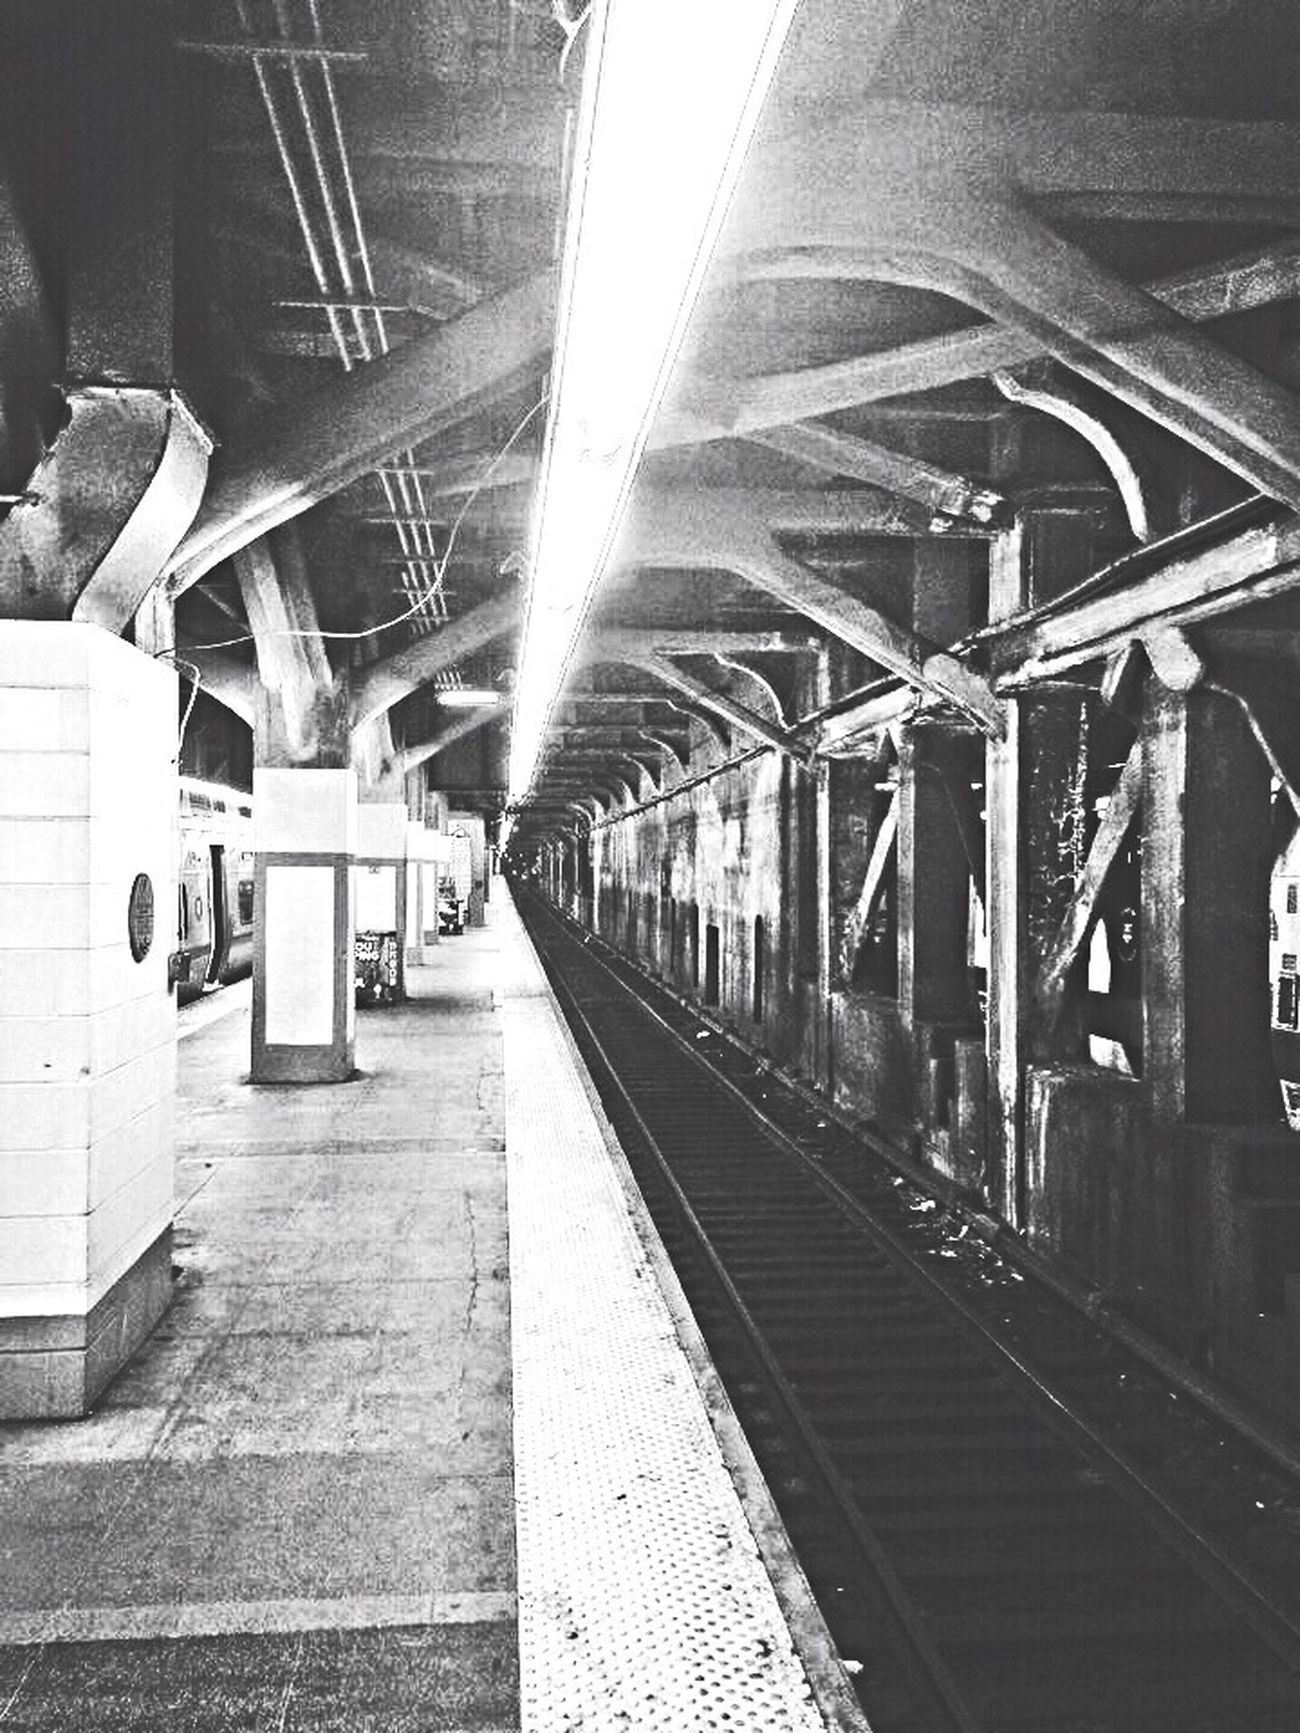 My Favorite Place Transportation Railroad Track Railroad Station Railroad Station Platform Public Transportation Rail Transportation Mode Of Transport Travel Built Structure Diminishing Perspective The Way Forward Subway Station Vanishing Point Day Subway Platform Modern Public Transport Architectural Column Railway Station Platform an oldie but I do love it down in the underground... NYC Grand Central Station Underground